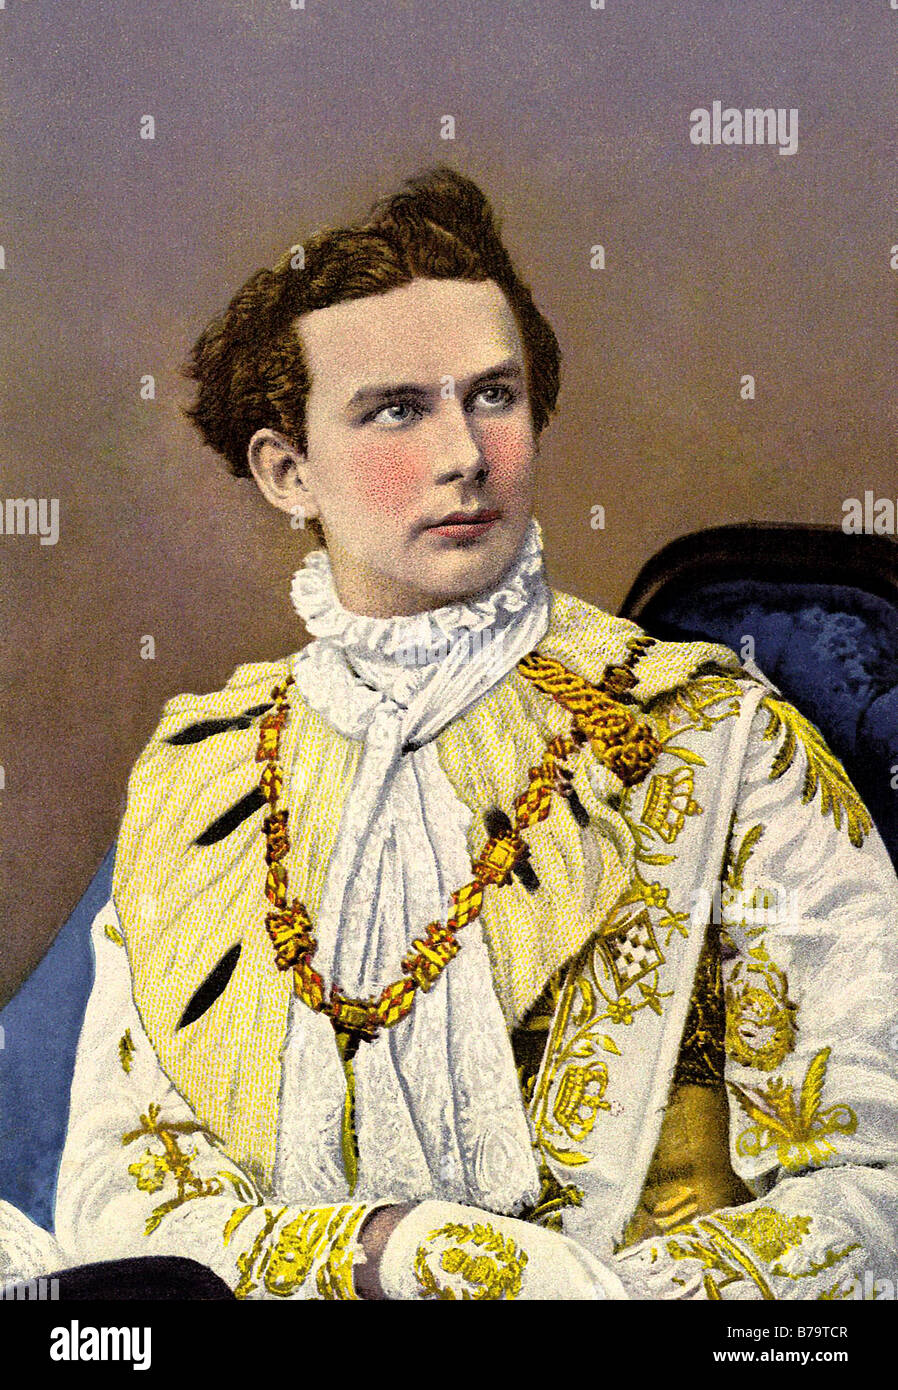 The young Ludwig II King of Bavaria - Stock Image